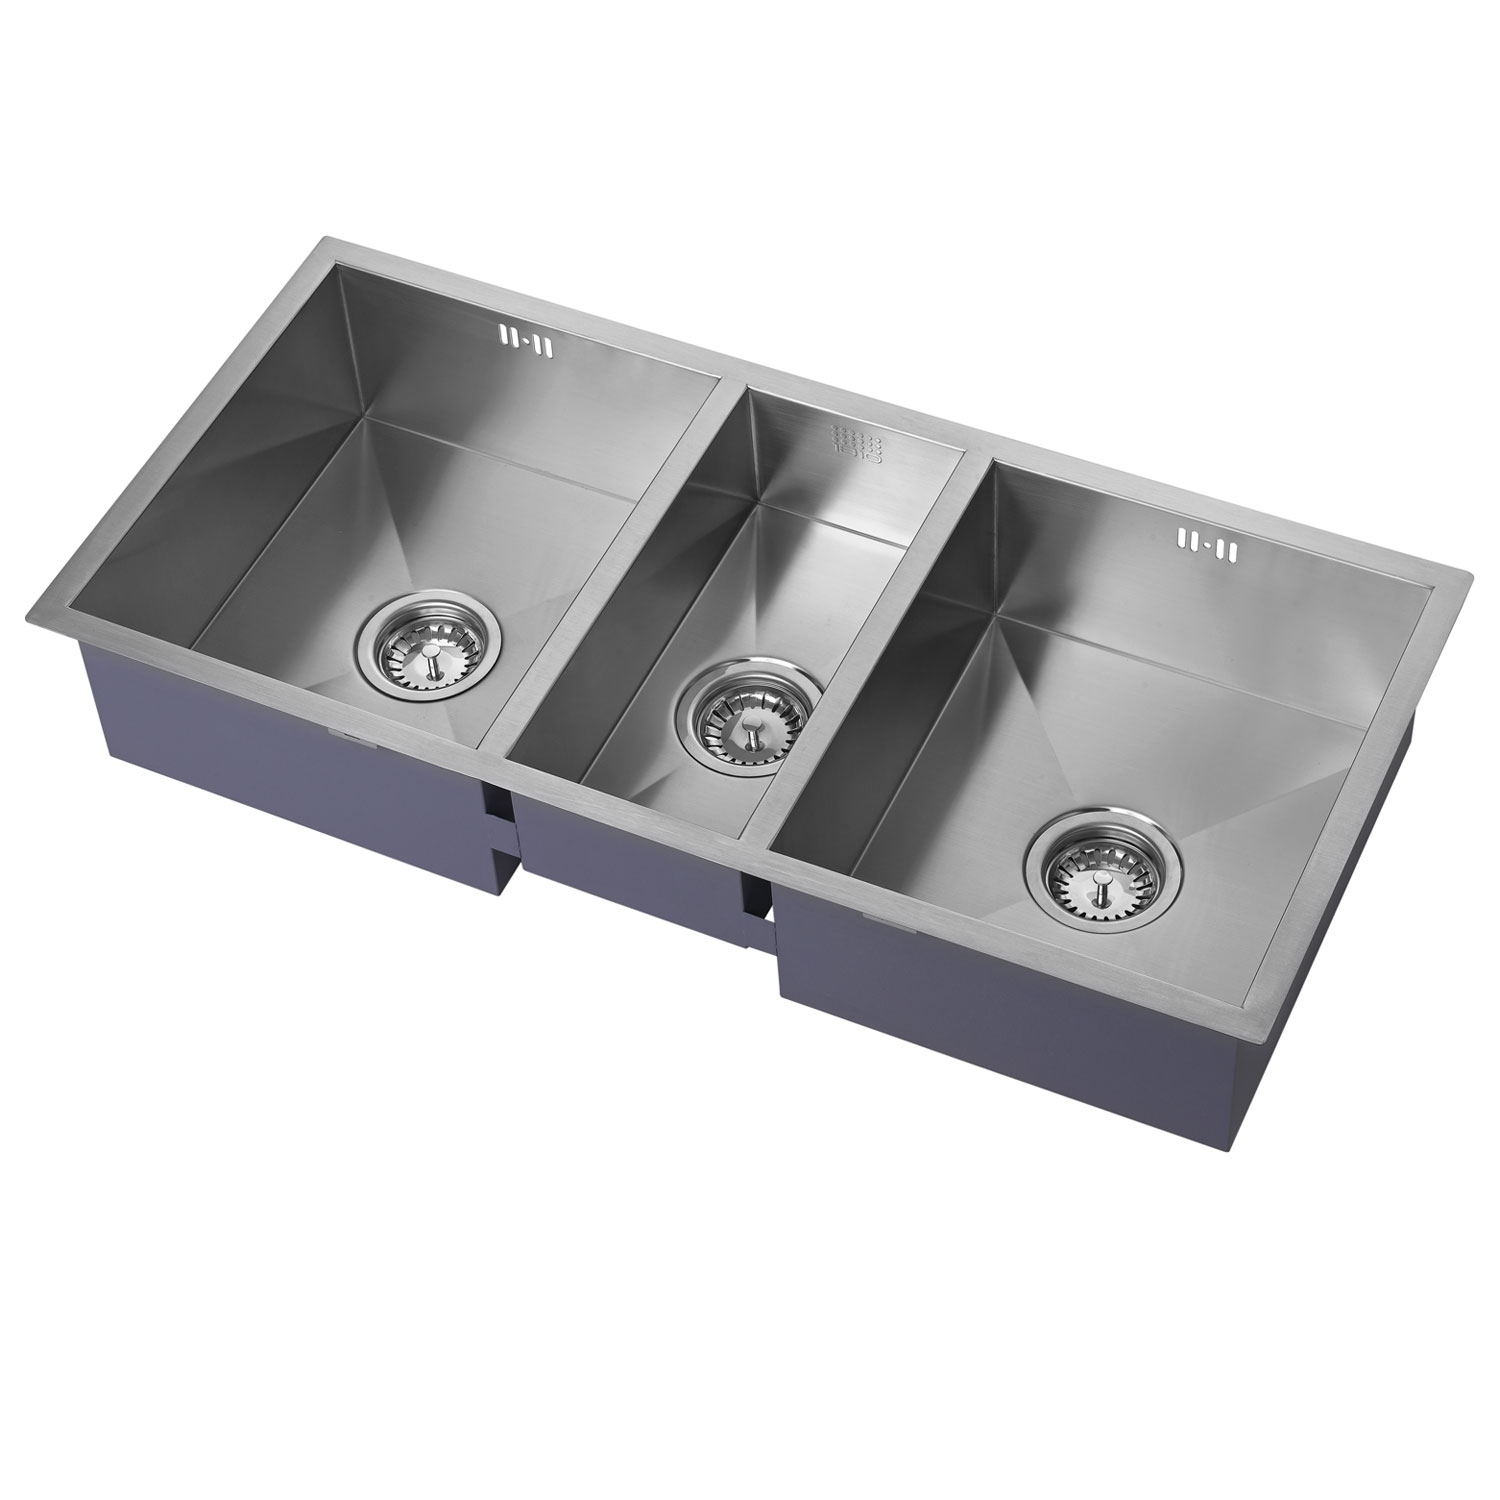 The 1810 Company Zentrio 340/180/340U 3.0 Bowl Kitchen Sink - Stainless Steel-0